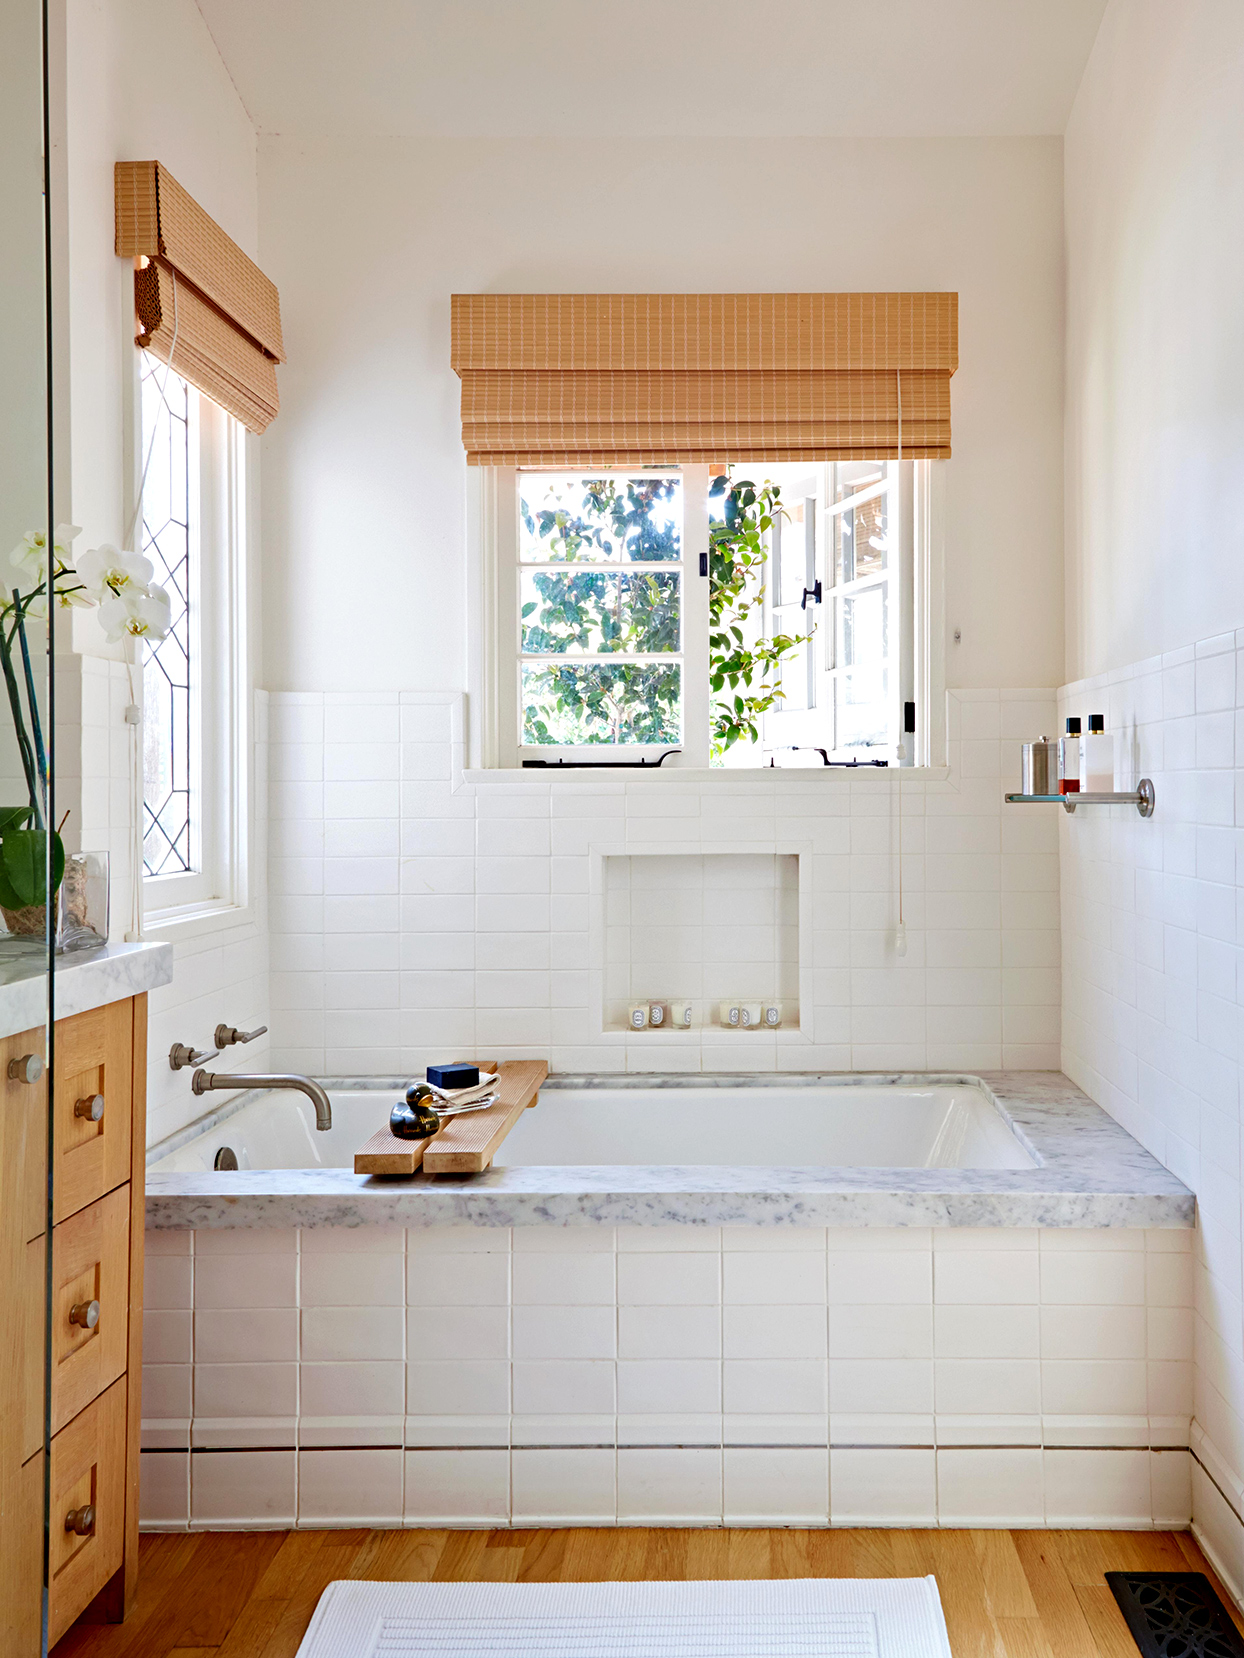 bathroom with wooden floors and windows